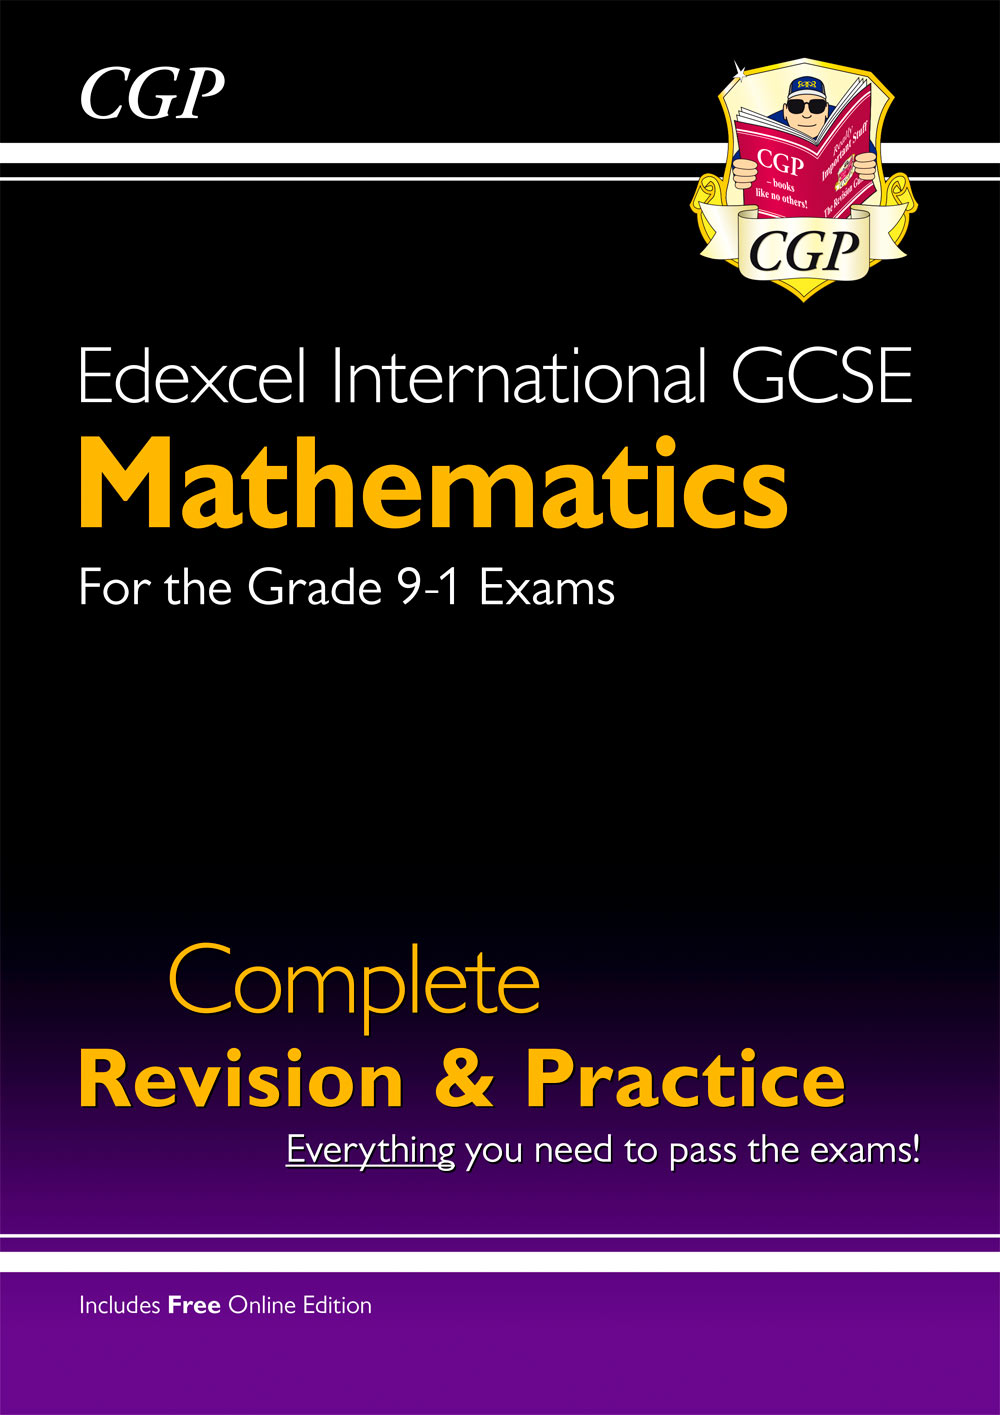 MESI41 - New Edexcel International GCSE Maths Complete Revision & Practice - Grade 9-1 (with Online